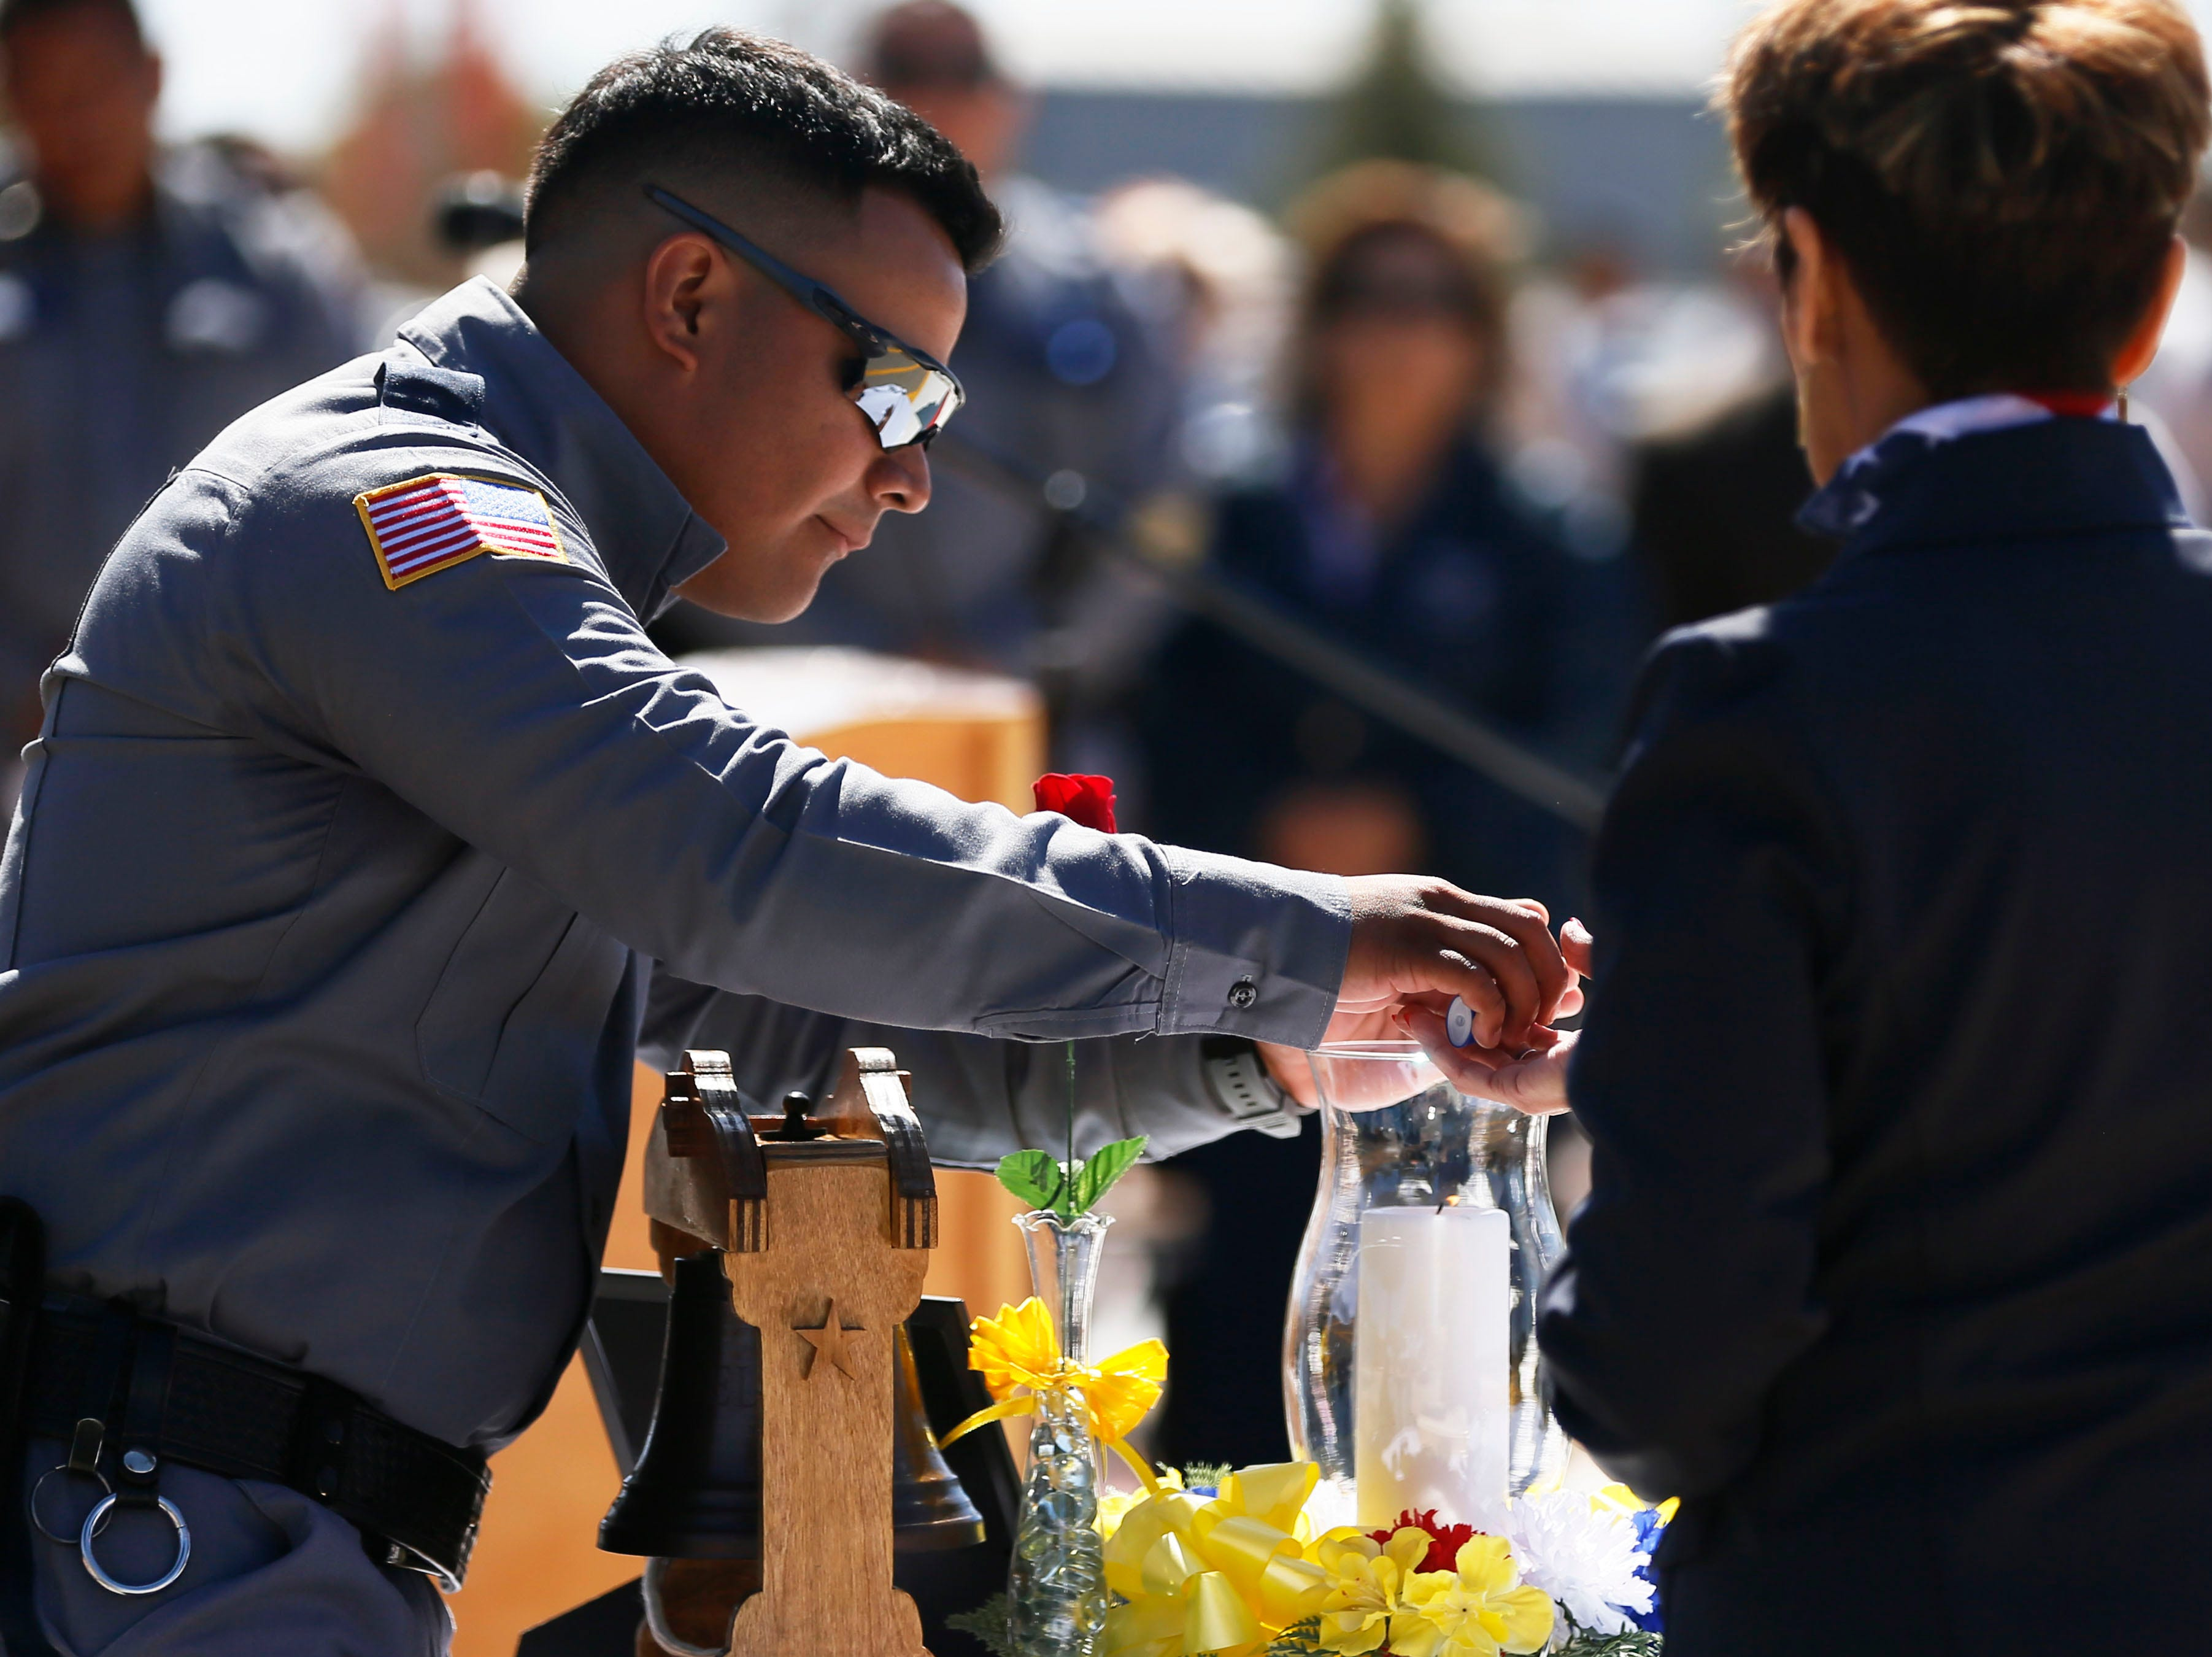 Correctional officer Joseph Horta-Hernandez lights the candle to honor the memory of fallen officers Wednesday, May 8, at Rogelio Sanchez State Jail in El Paso.